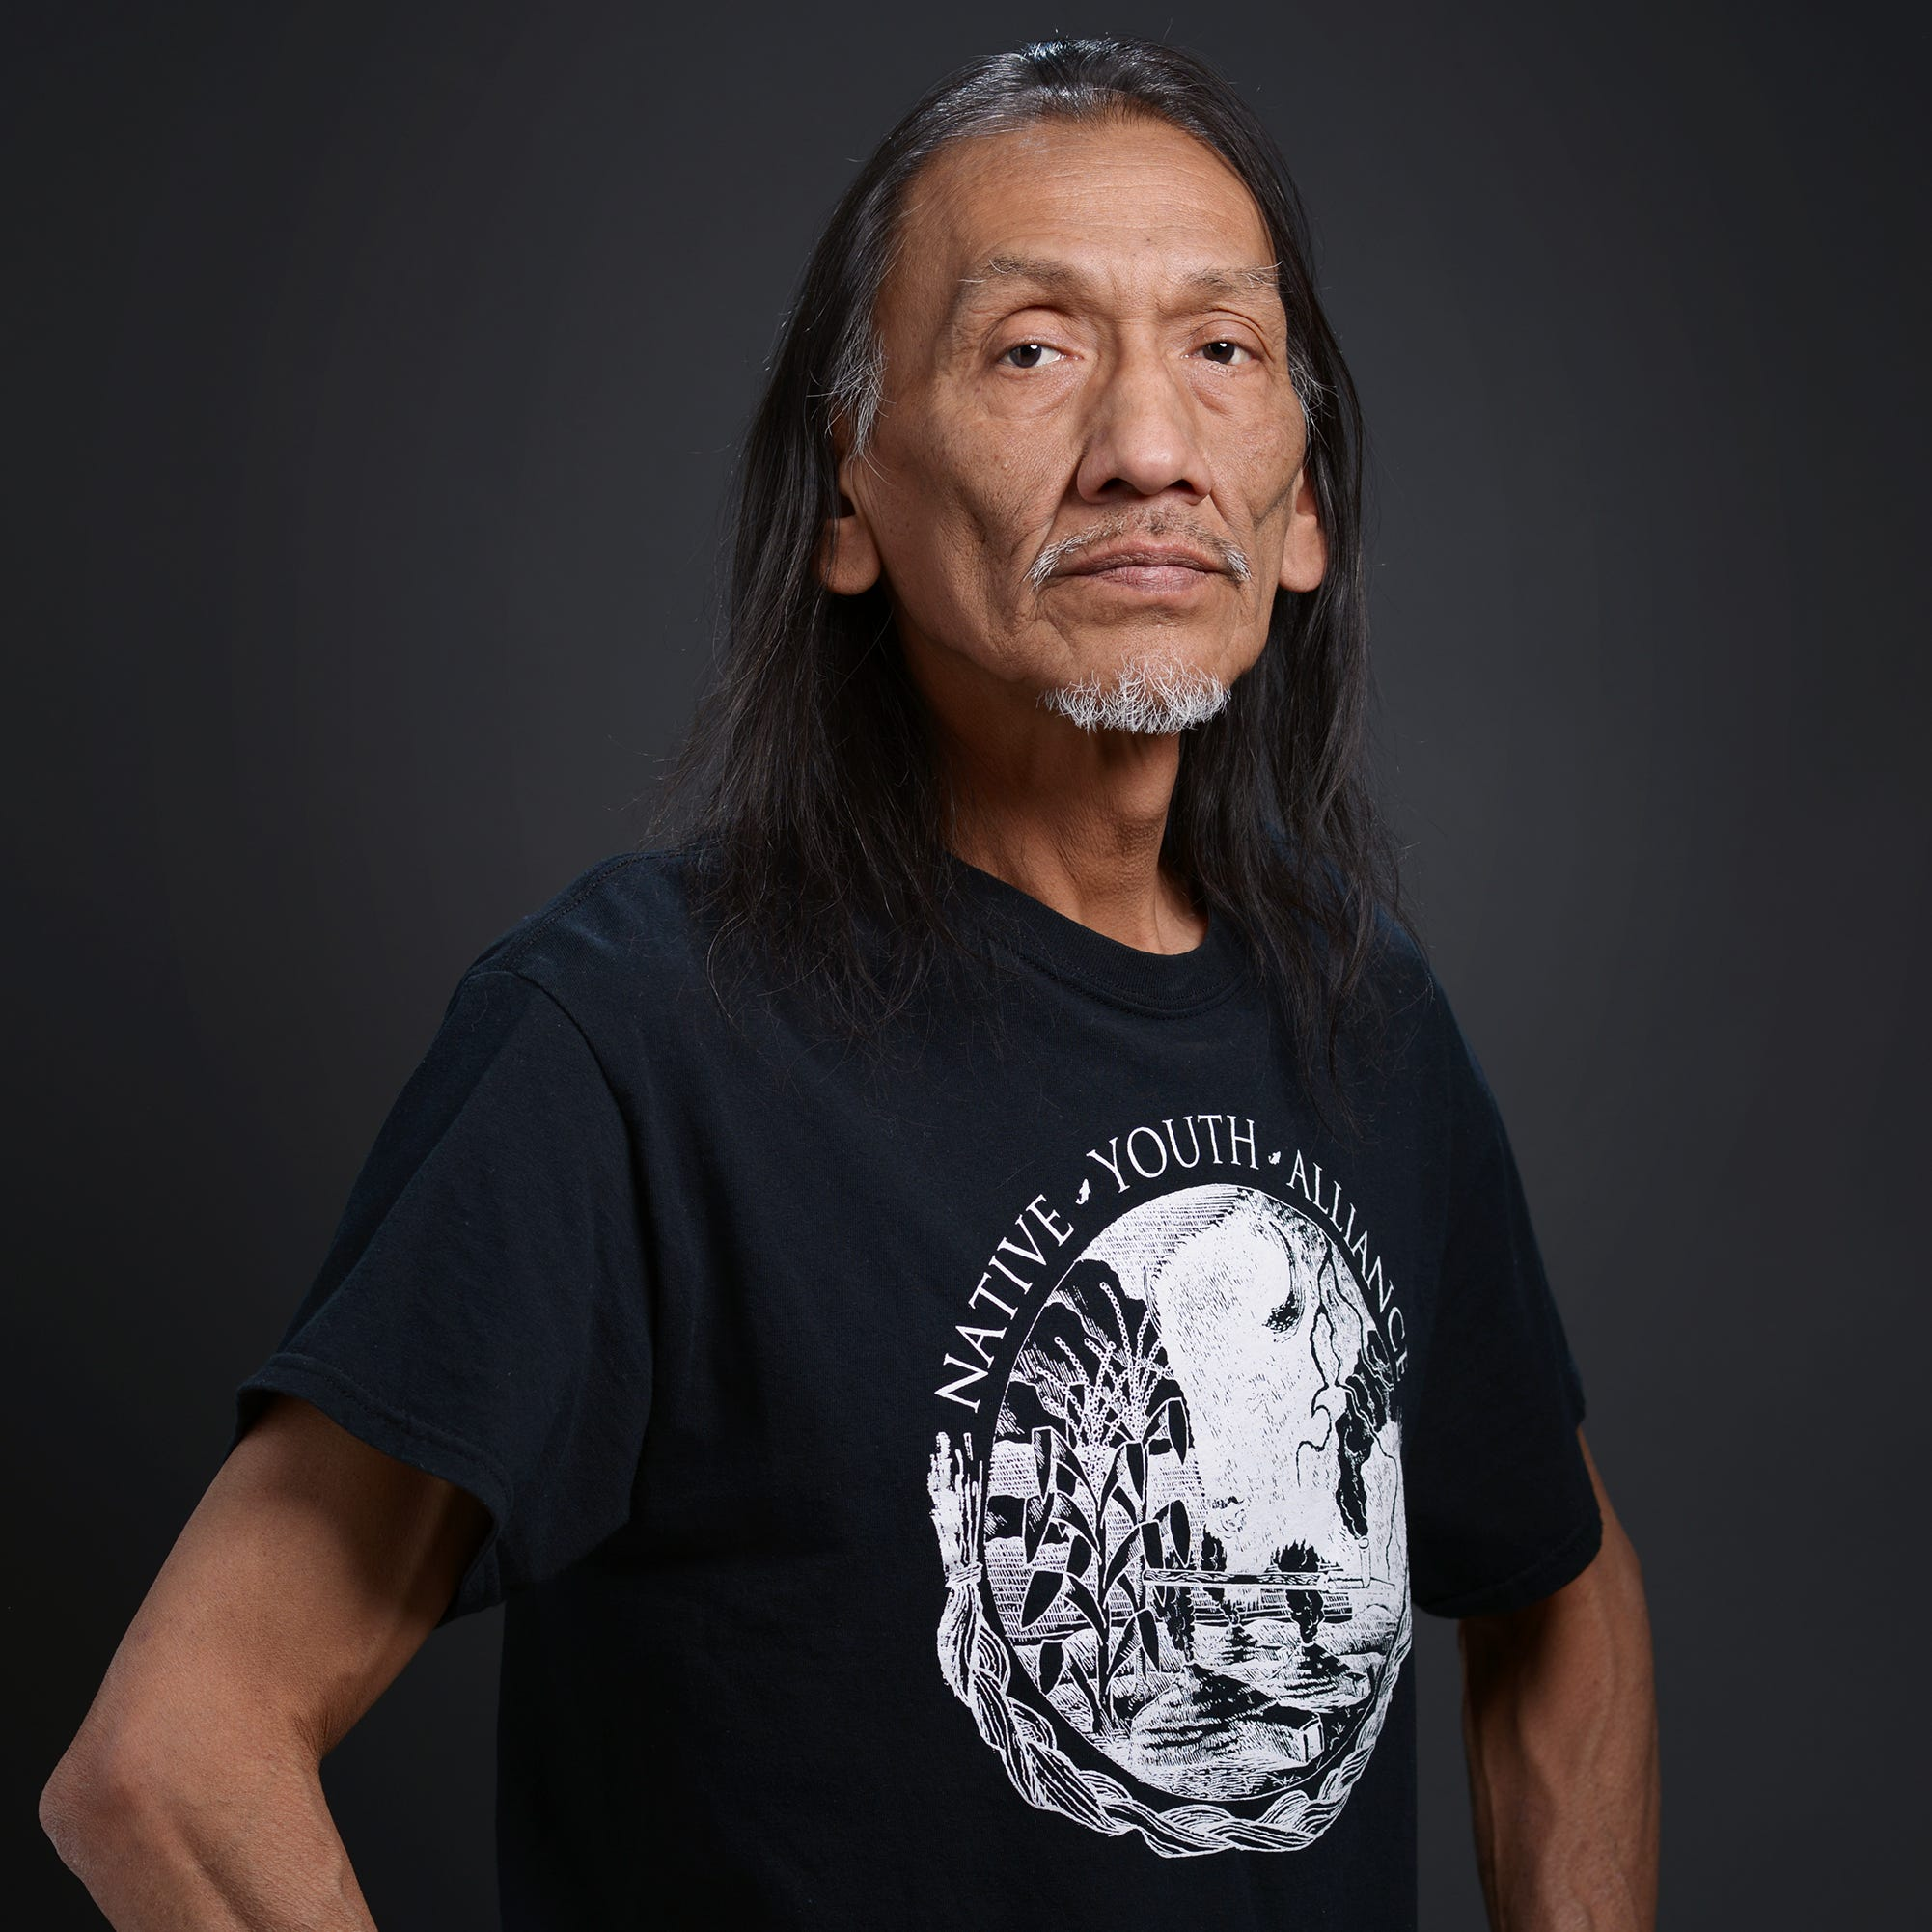 Nathan Phillips wants to meet with Covington Catholic students